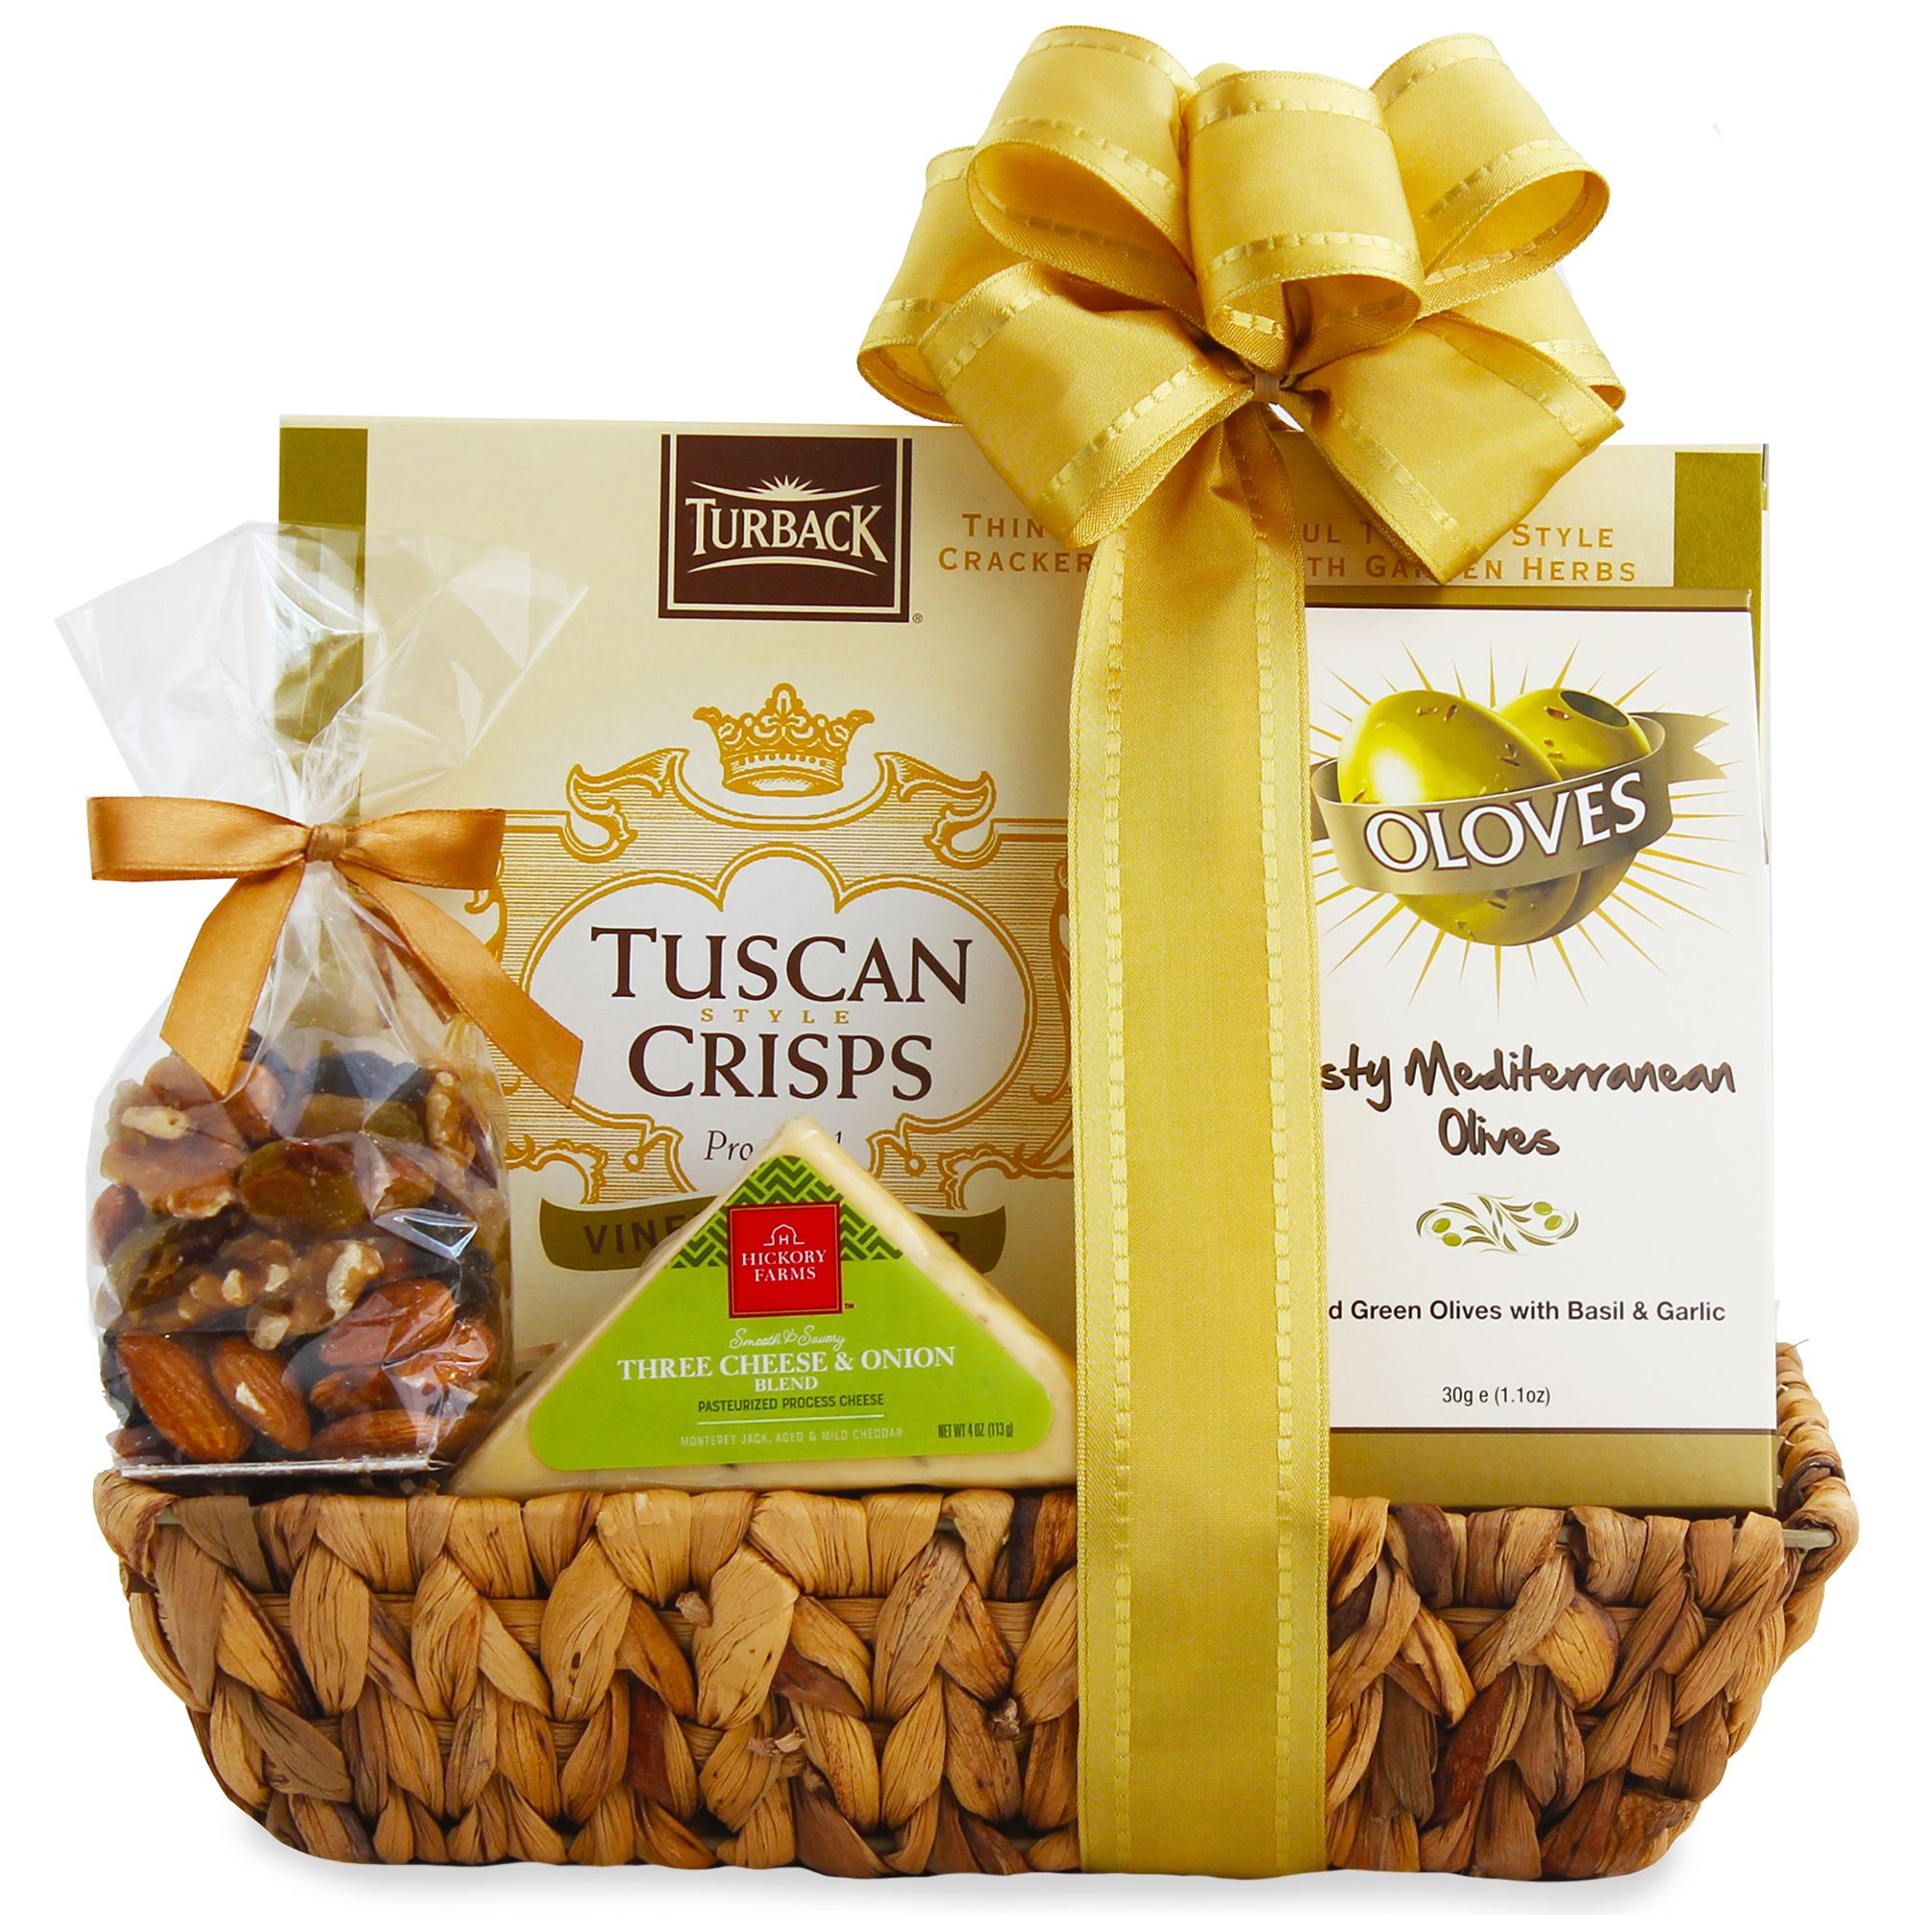 wine.com Savory Snacking Gift Basket  Gift Product Image